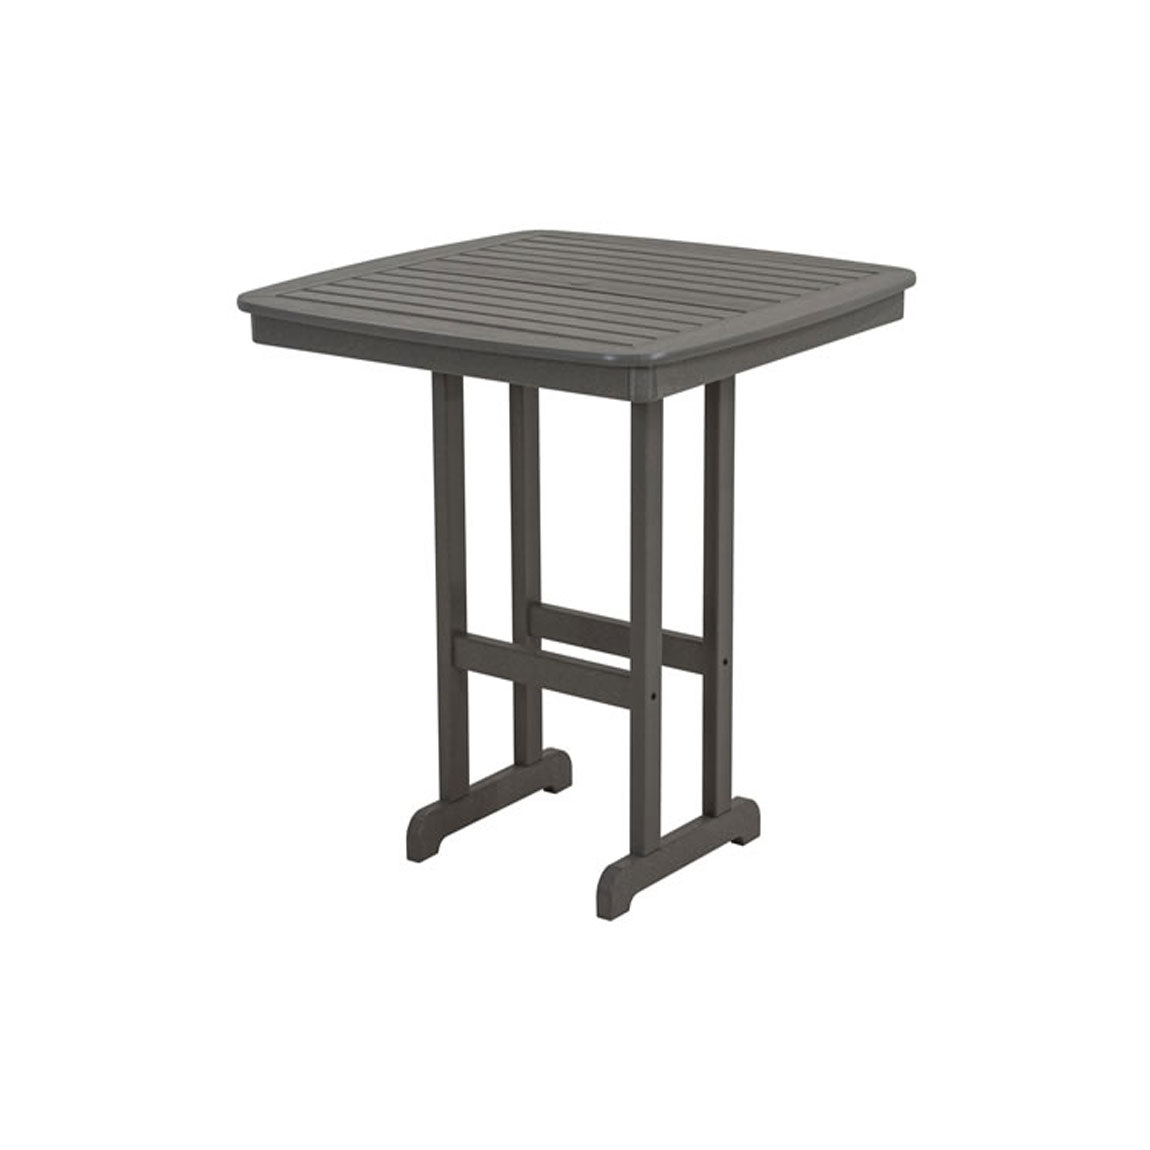 Recycled Plastic Nautical 44 inches Pub Table by Poly-Wood Adirondack